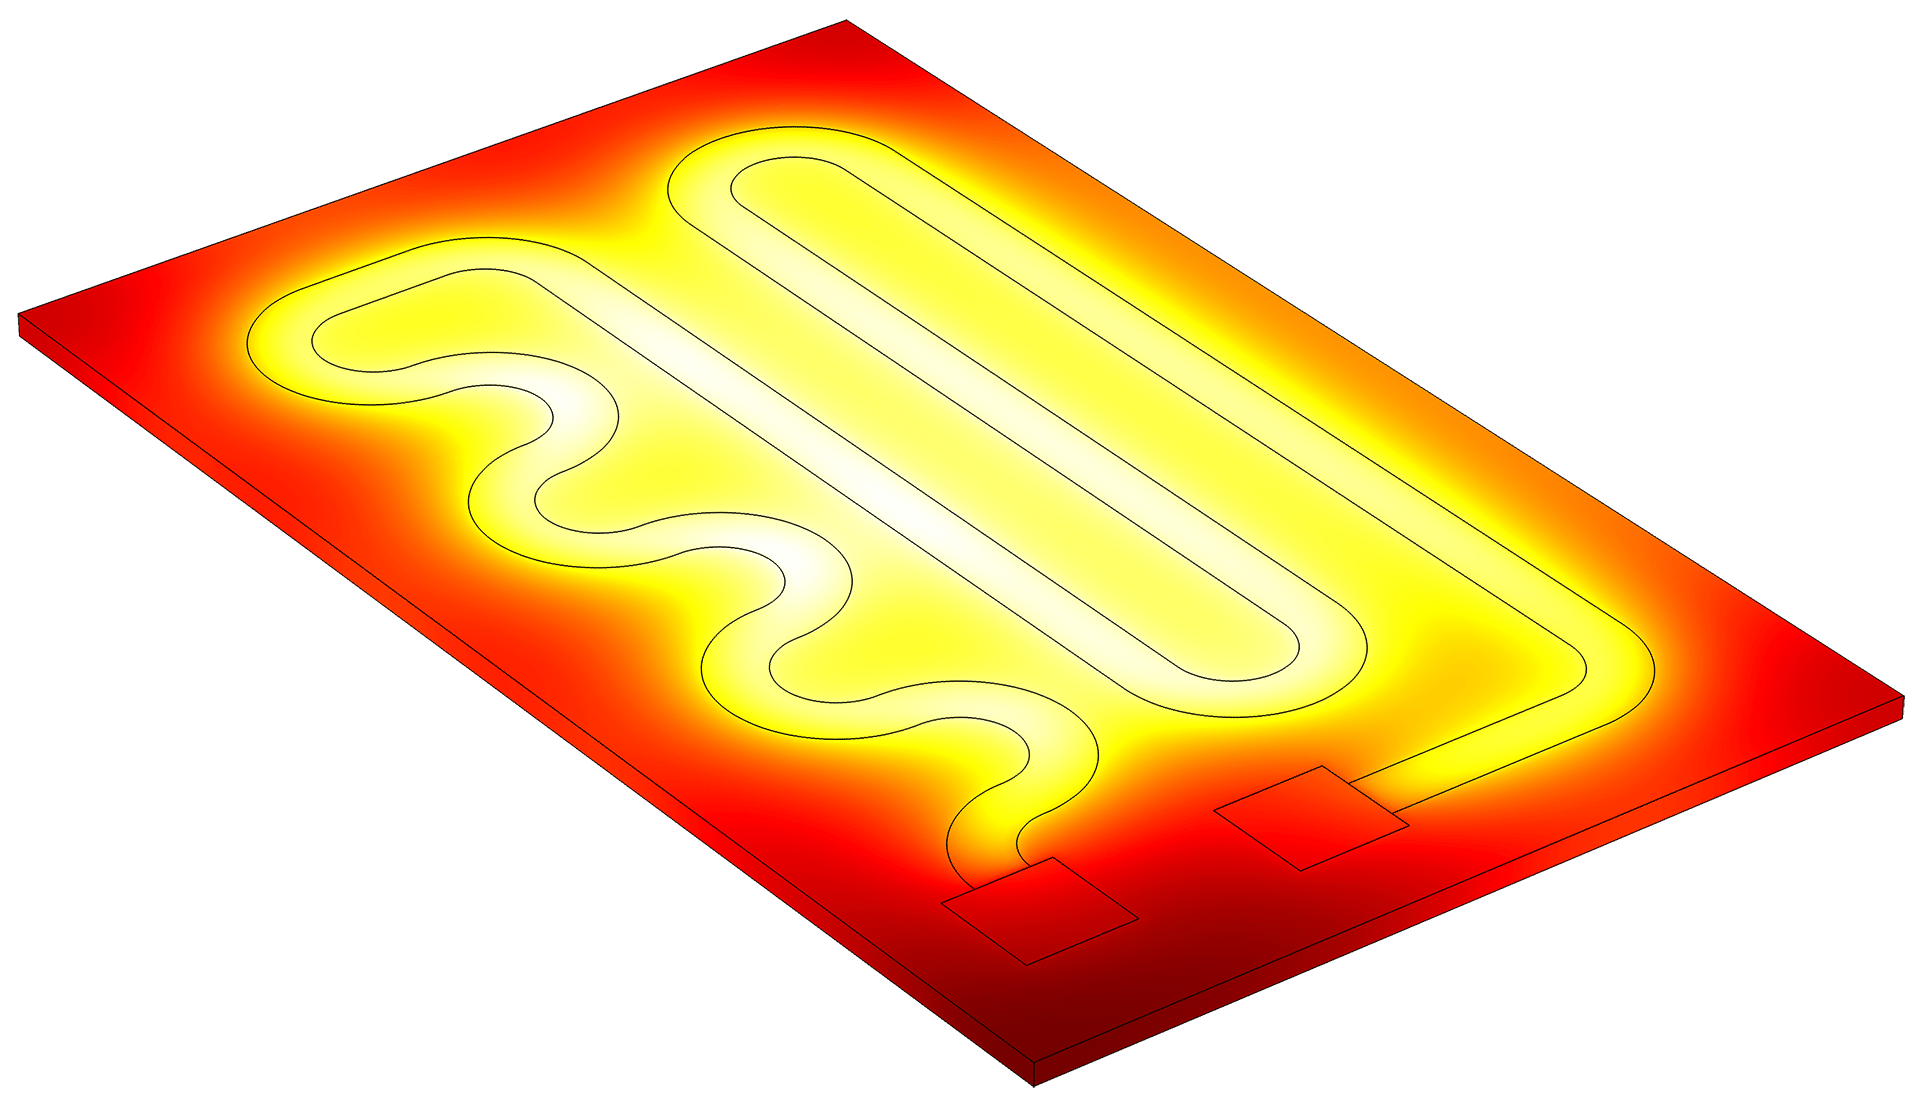 What is Heating Element Made of